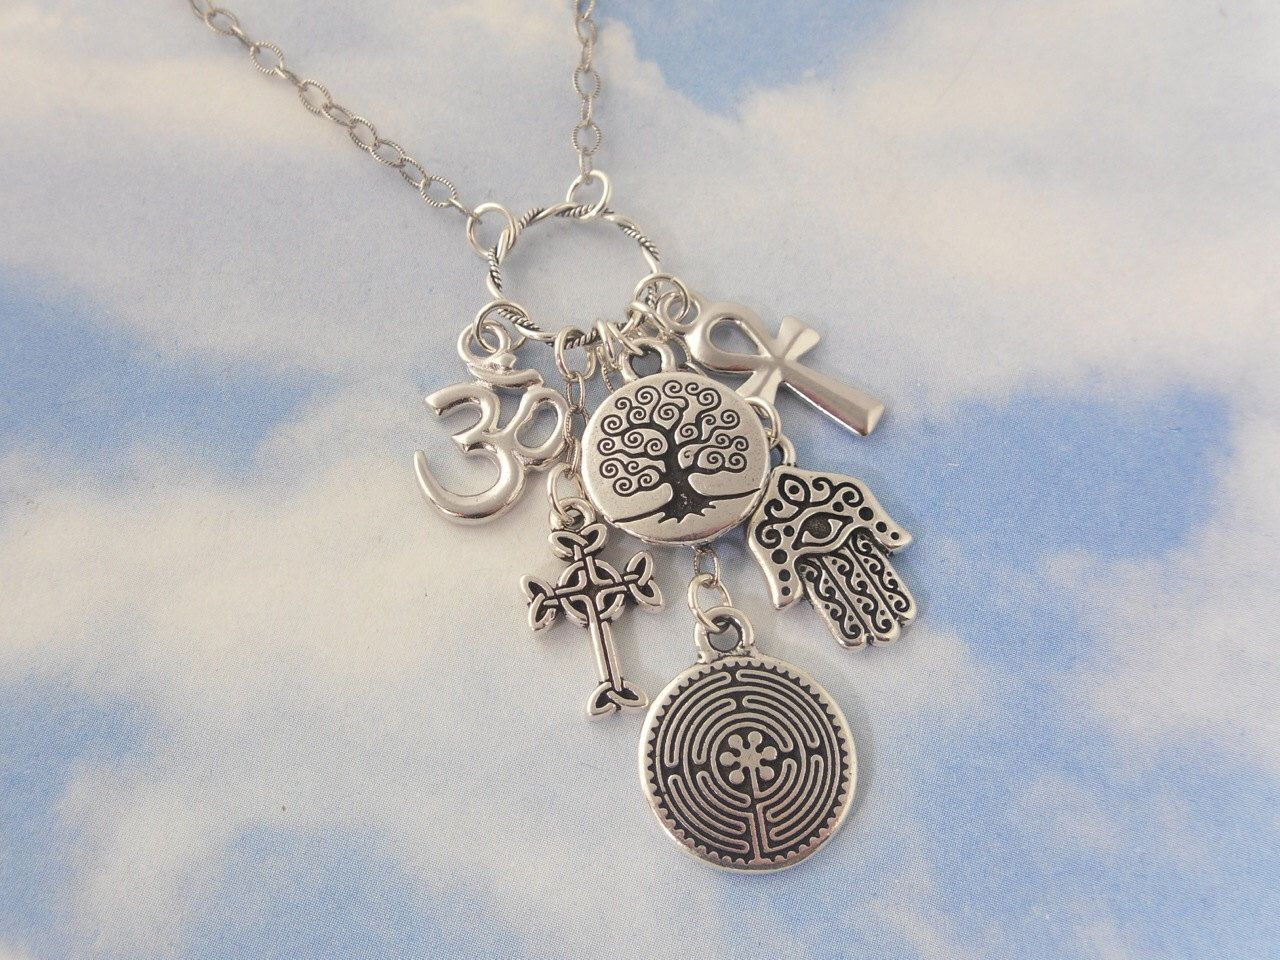 Ancient religions coexist silver charm cluster necklace om hamsa ancient religions coexist silver charm cluster necklace om hamsa hand tree of life aloadofball Gallery